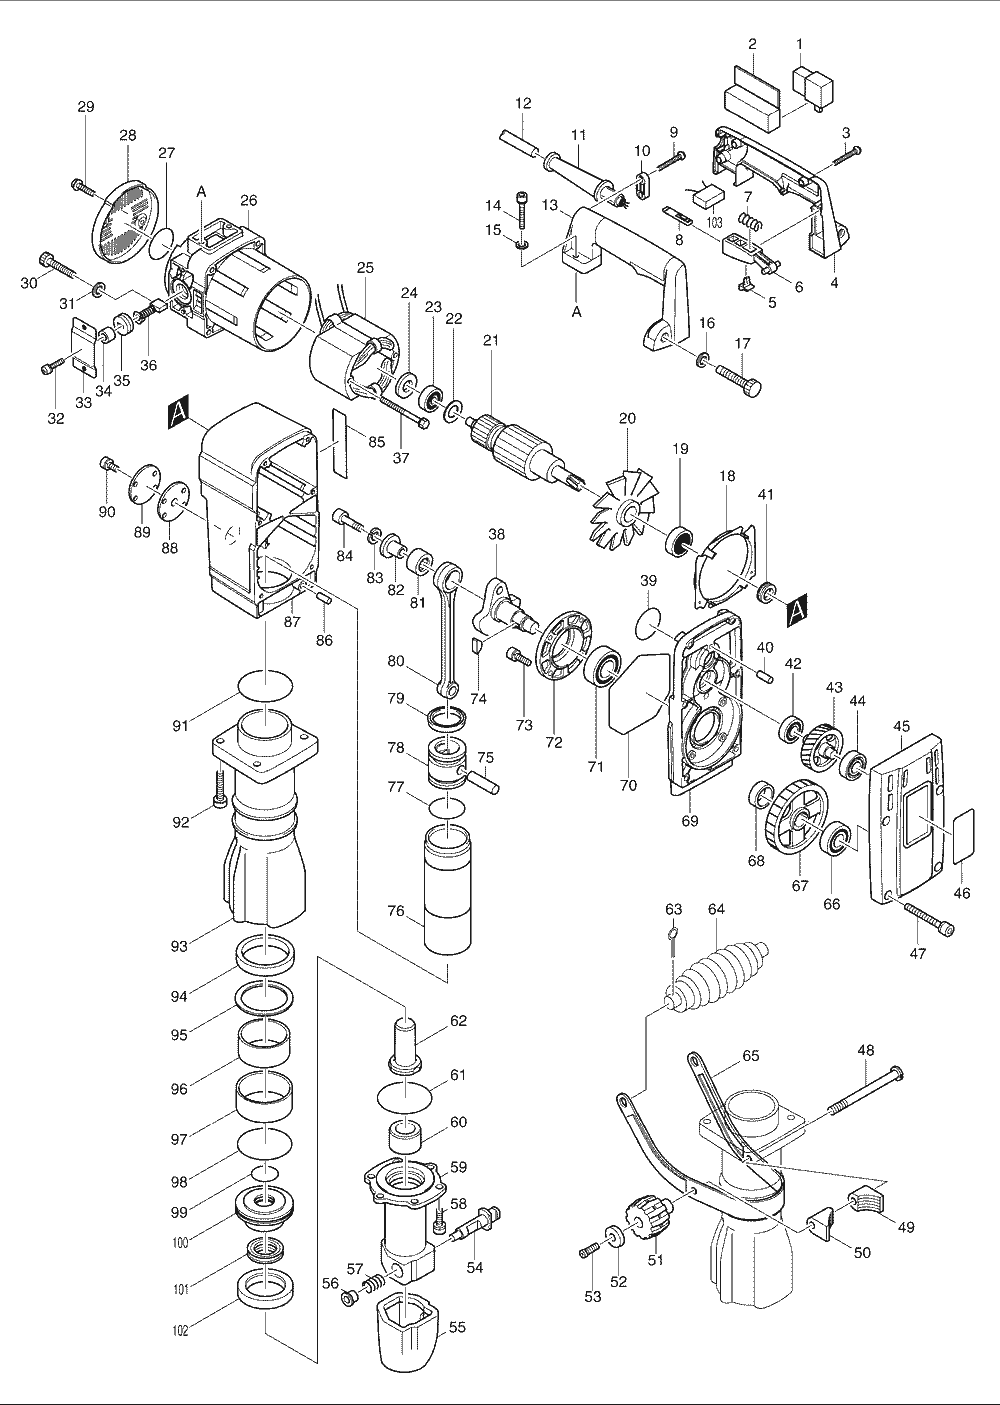 wiring diagram for makita hm0870c